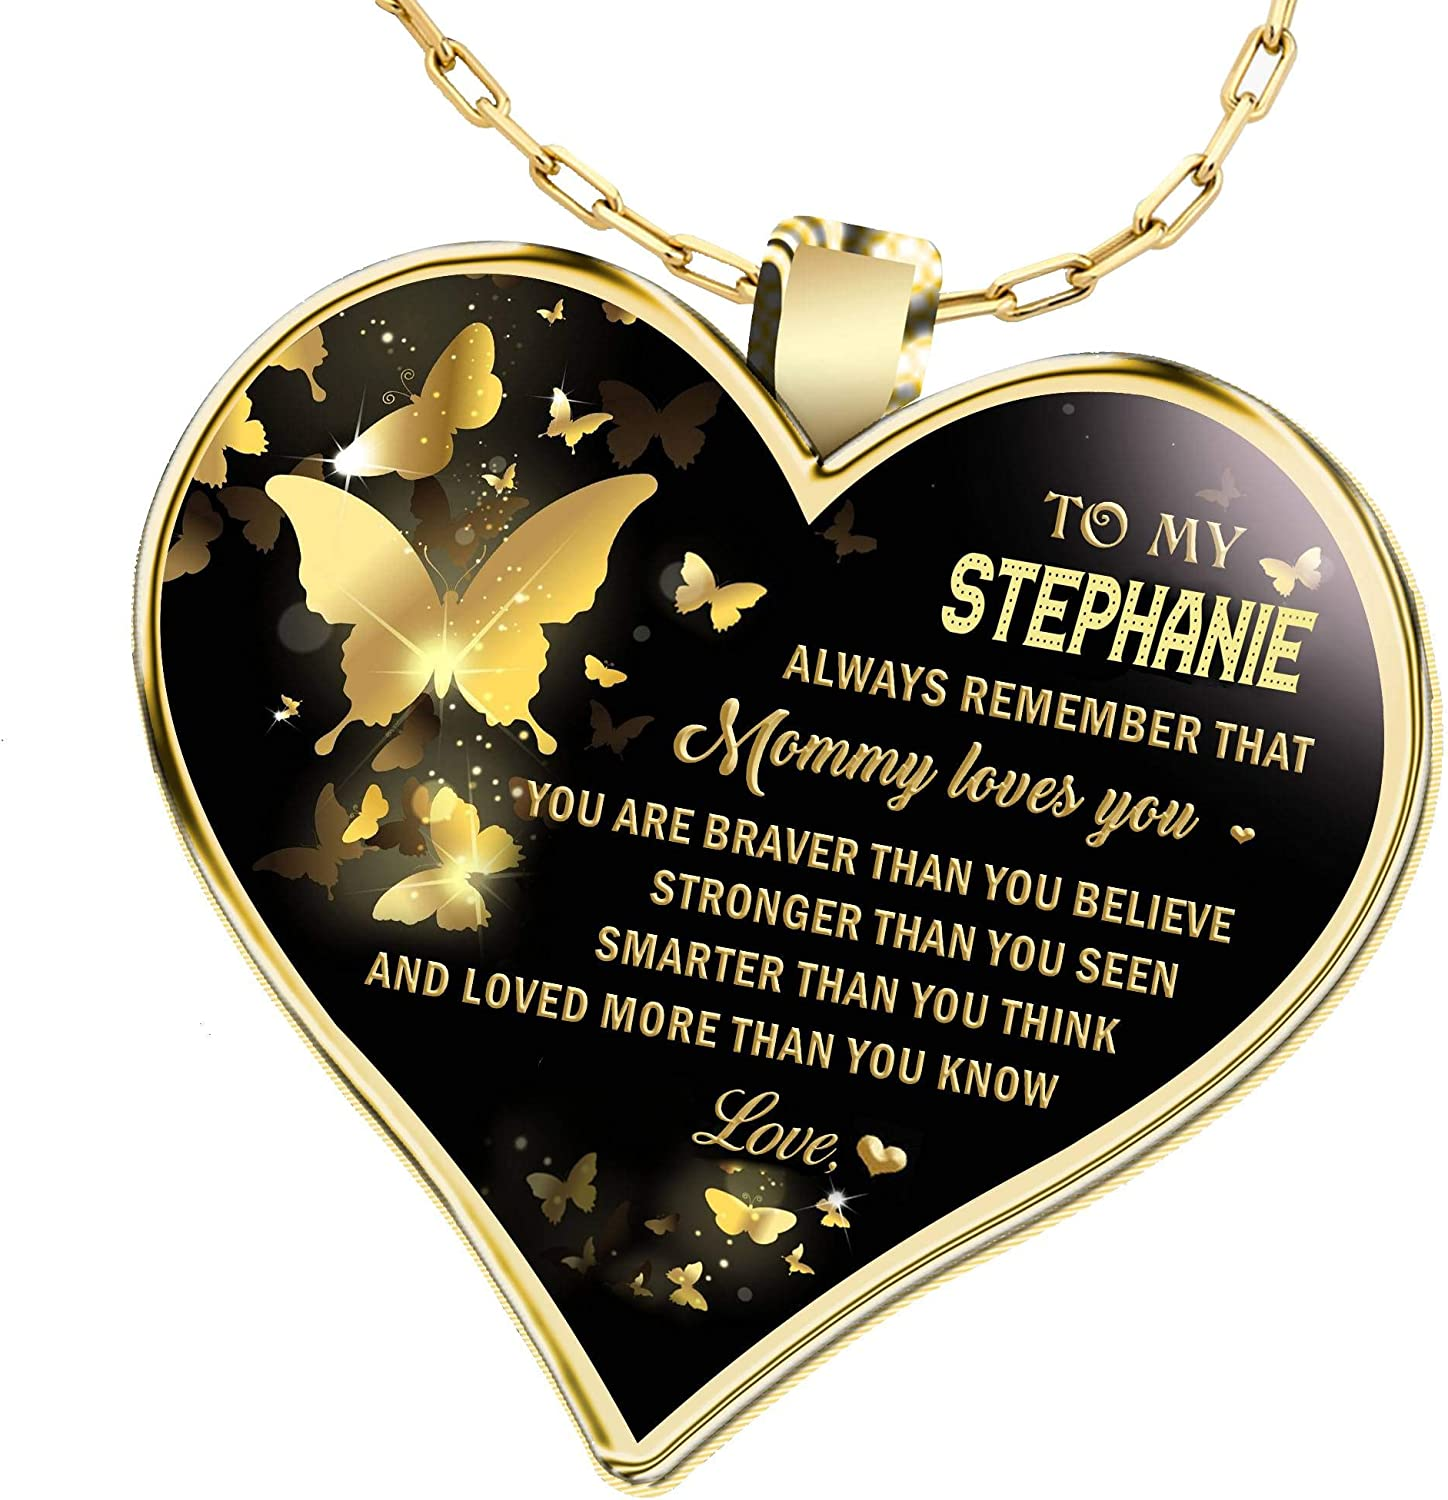 New sales Gifts Cheap mail order shopping Necklace Name for Wife to Always My Stephanie Tha Remember